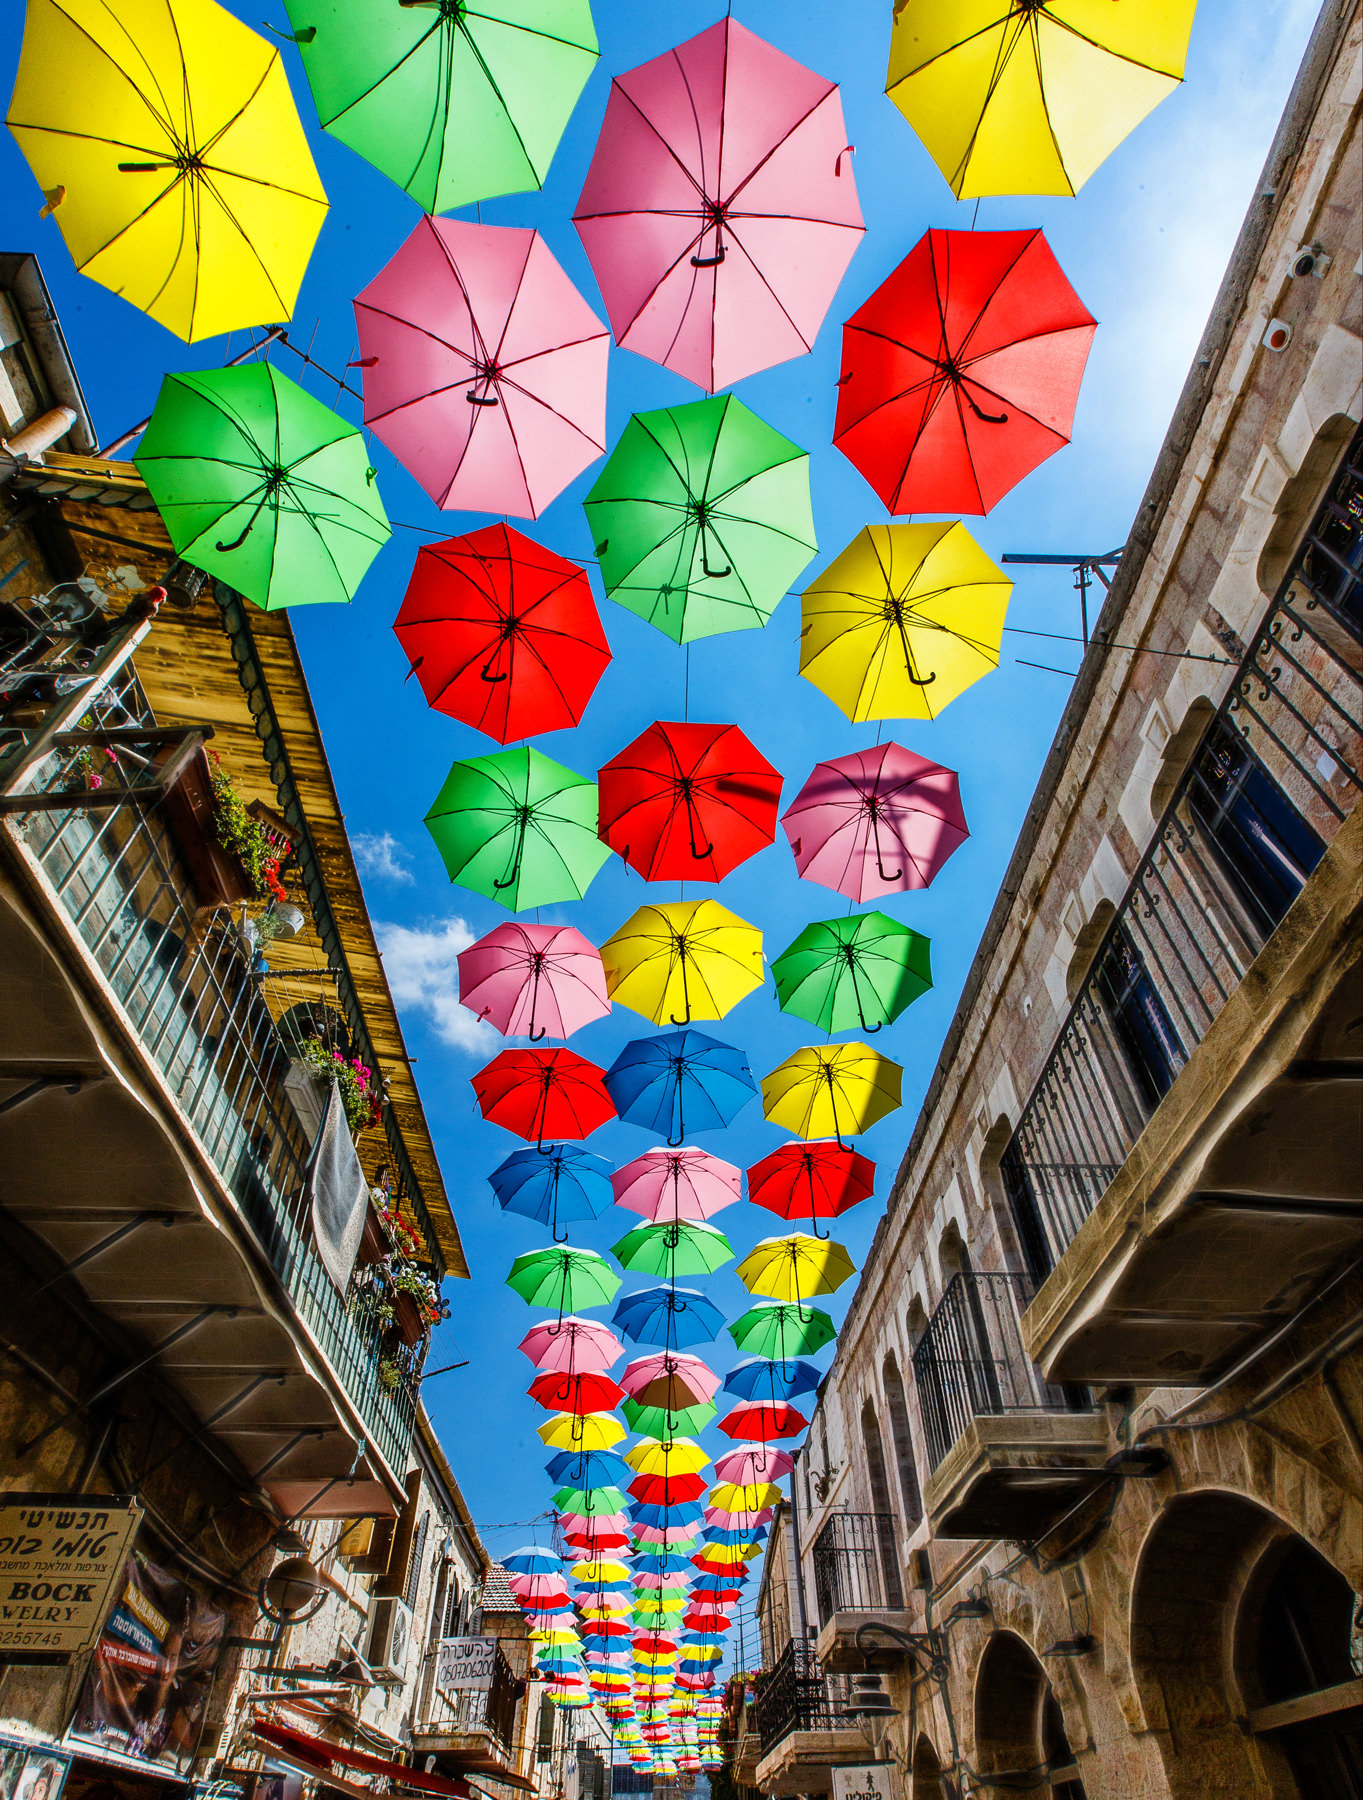 Jerusalem Umbrellas